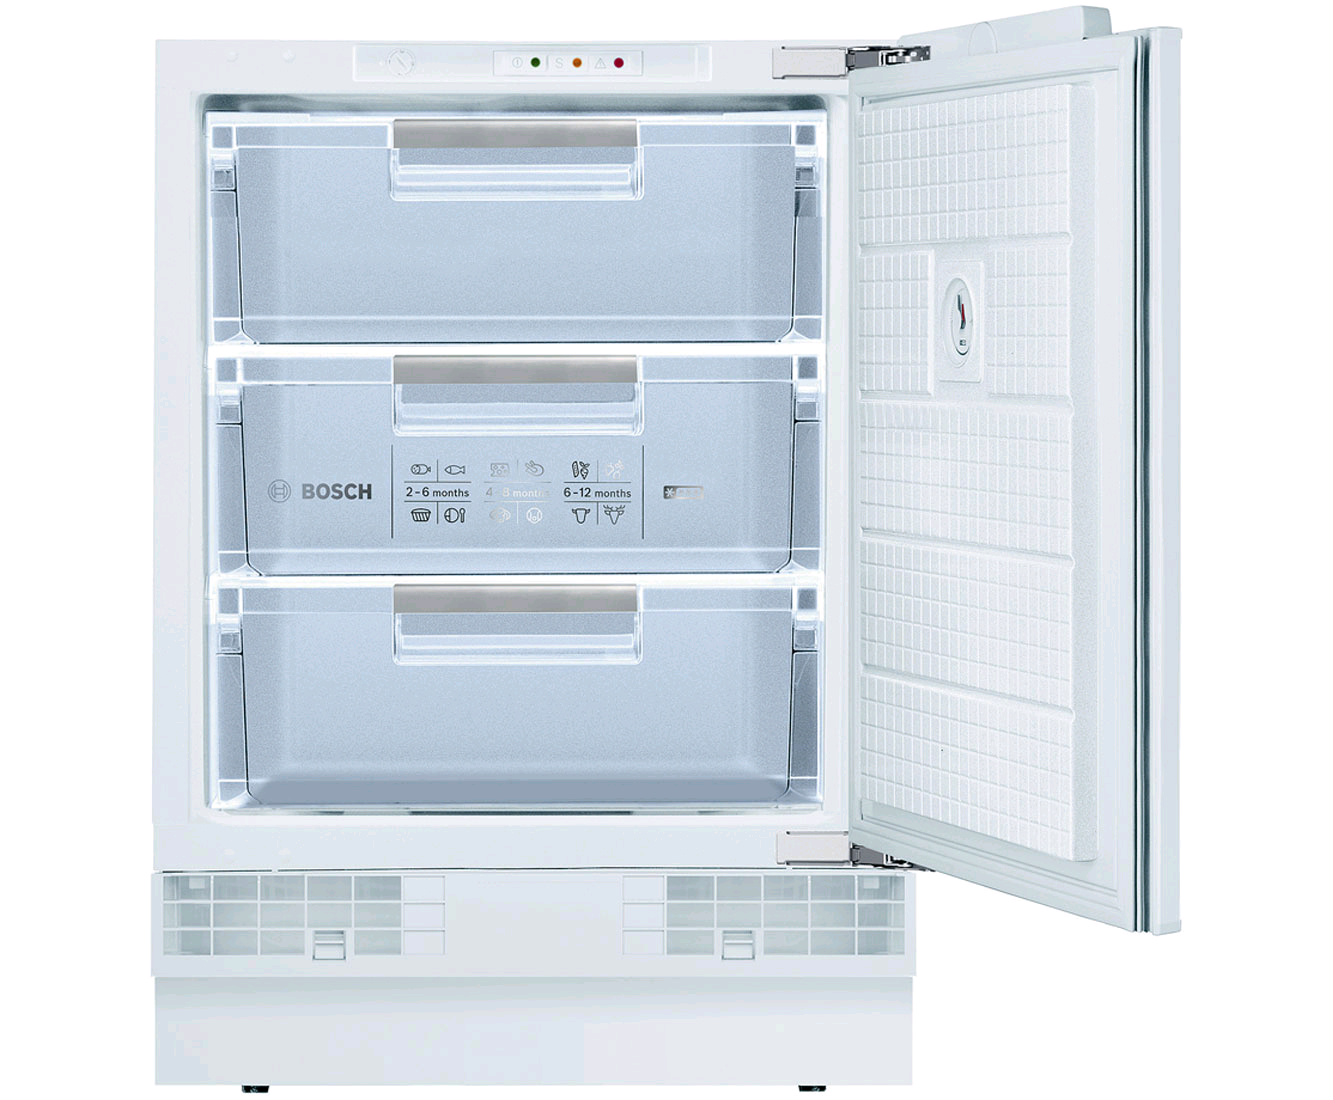 Bosch GUD15A50GB Series 6 Integrated Under Counter Freezer with Fixed Door Fixing Kit - A+ Rated Built under